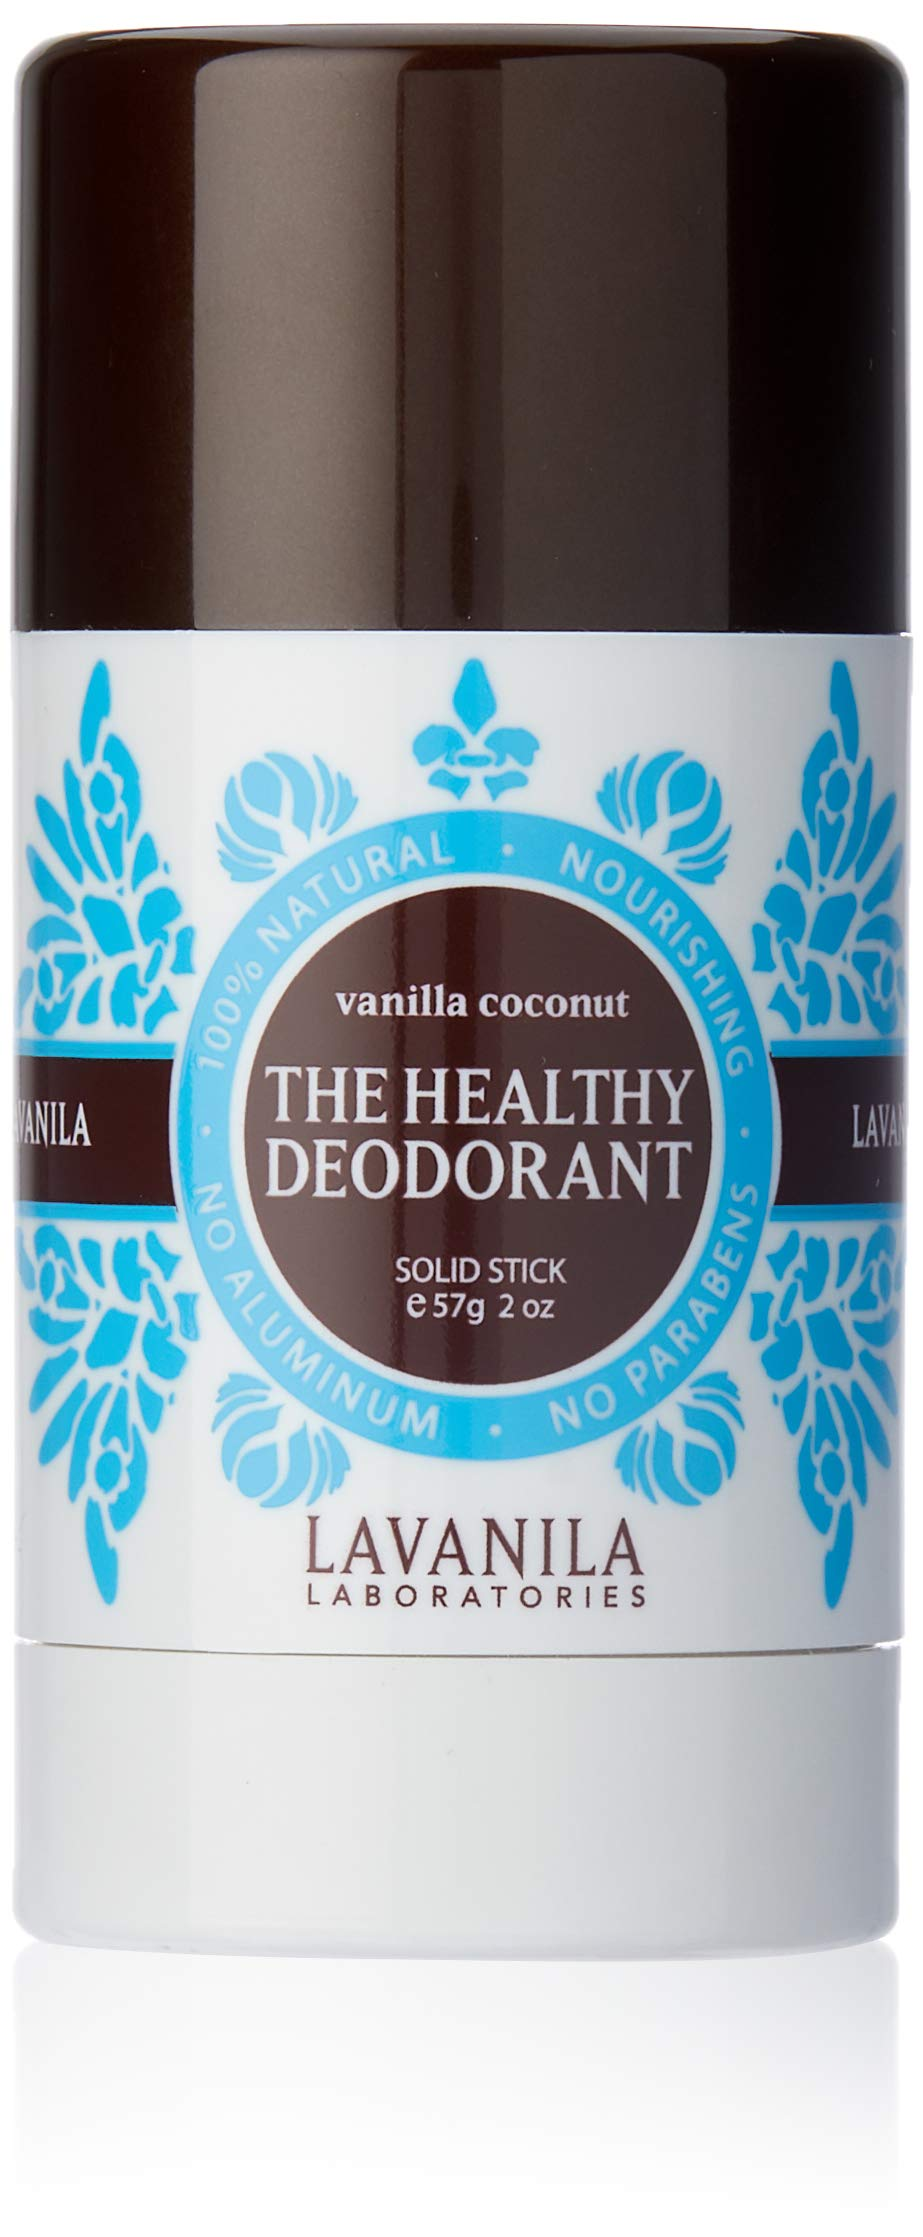 Lavanila - The Healthy Deodorant. Aluminum-Free, Vegan, Clean, and Natural - Vanilla Coconut 2 oz